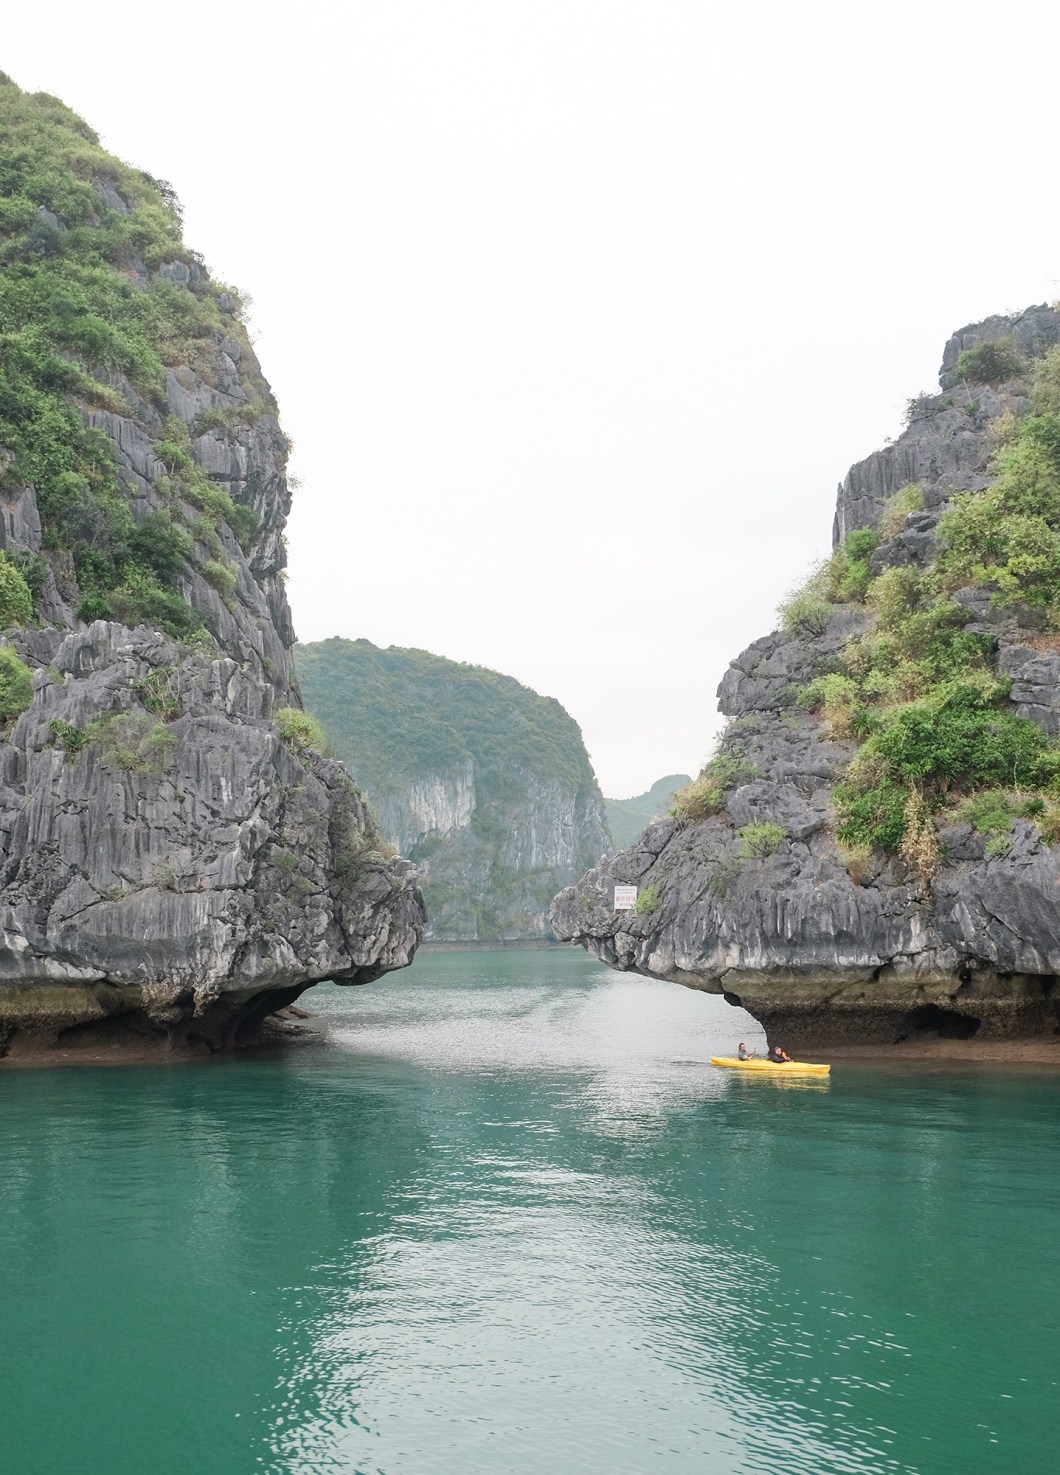 Ha Long Bay Vietnam | How Far From Home